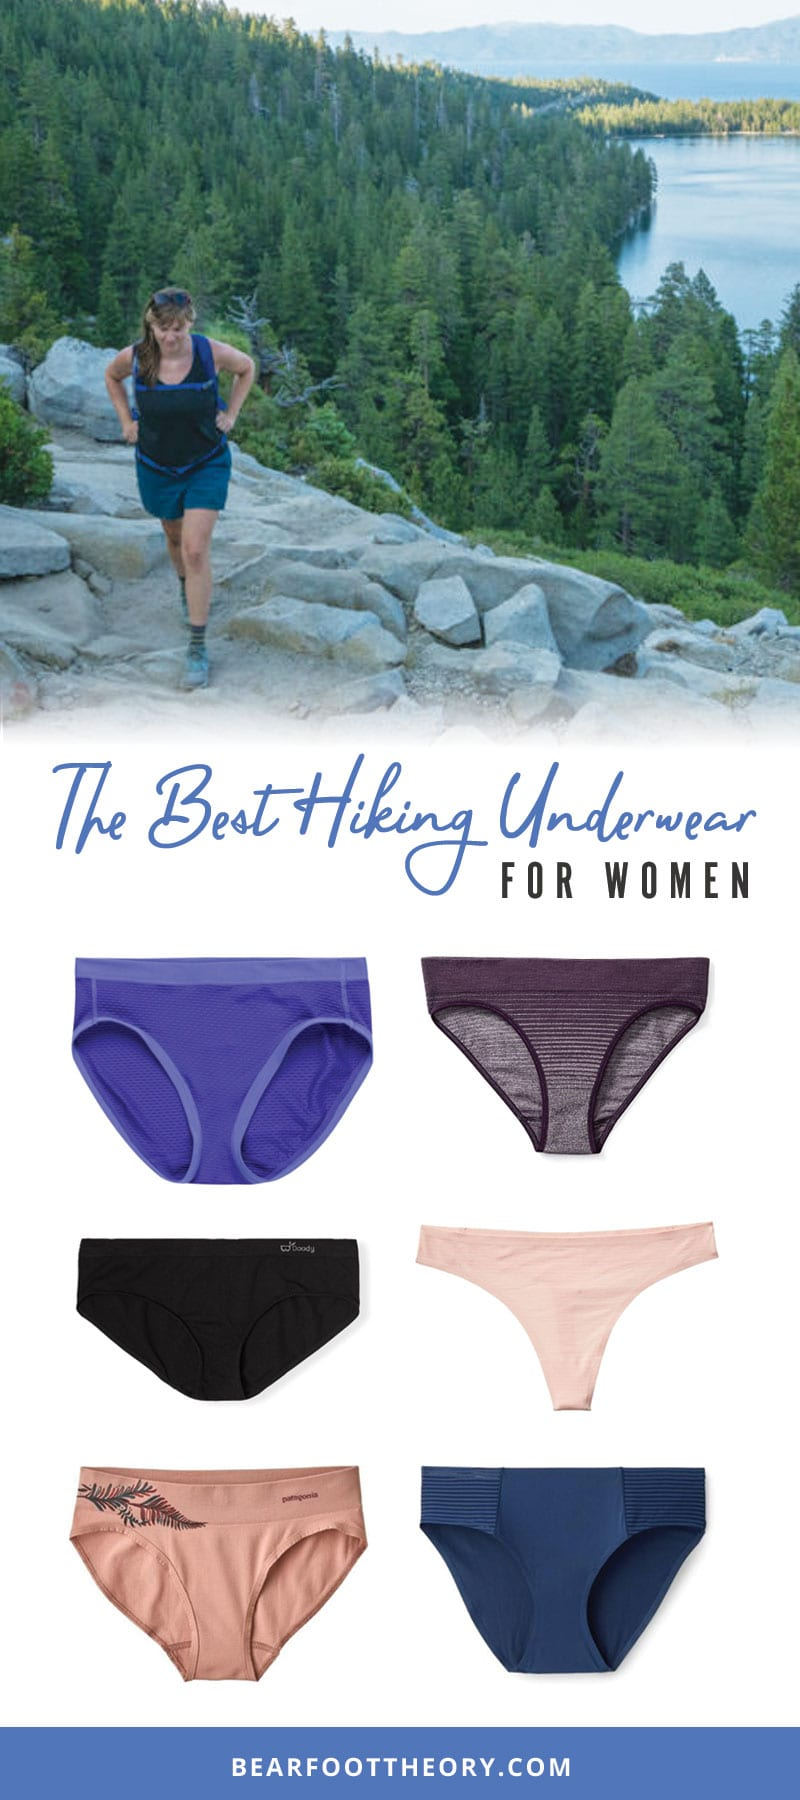 A round-up of the best women's hiking underwear made or wool and nylon that won't chafe or move & efficiently wick moisture when you're active outdoors.